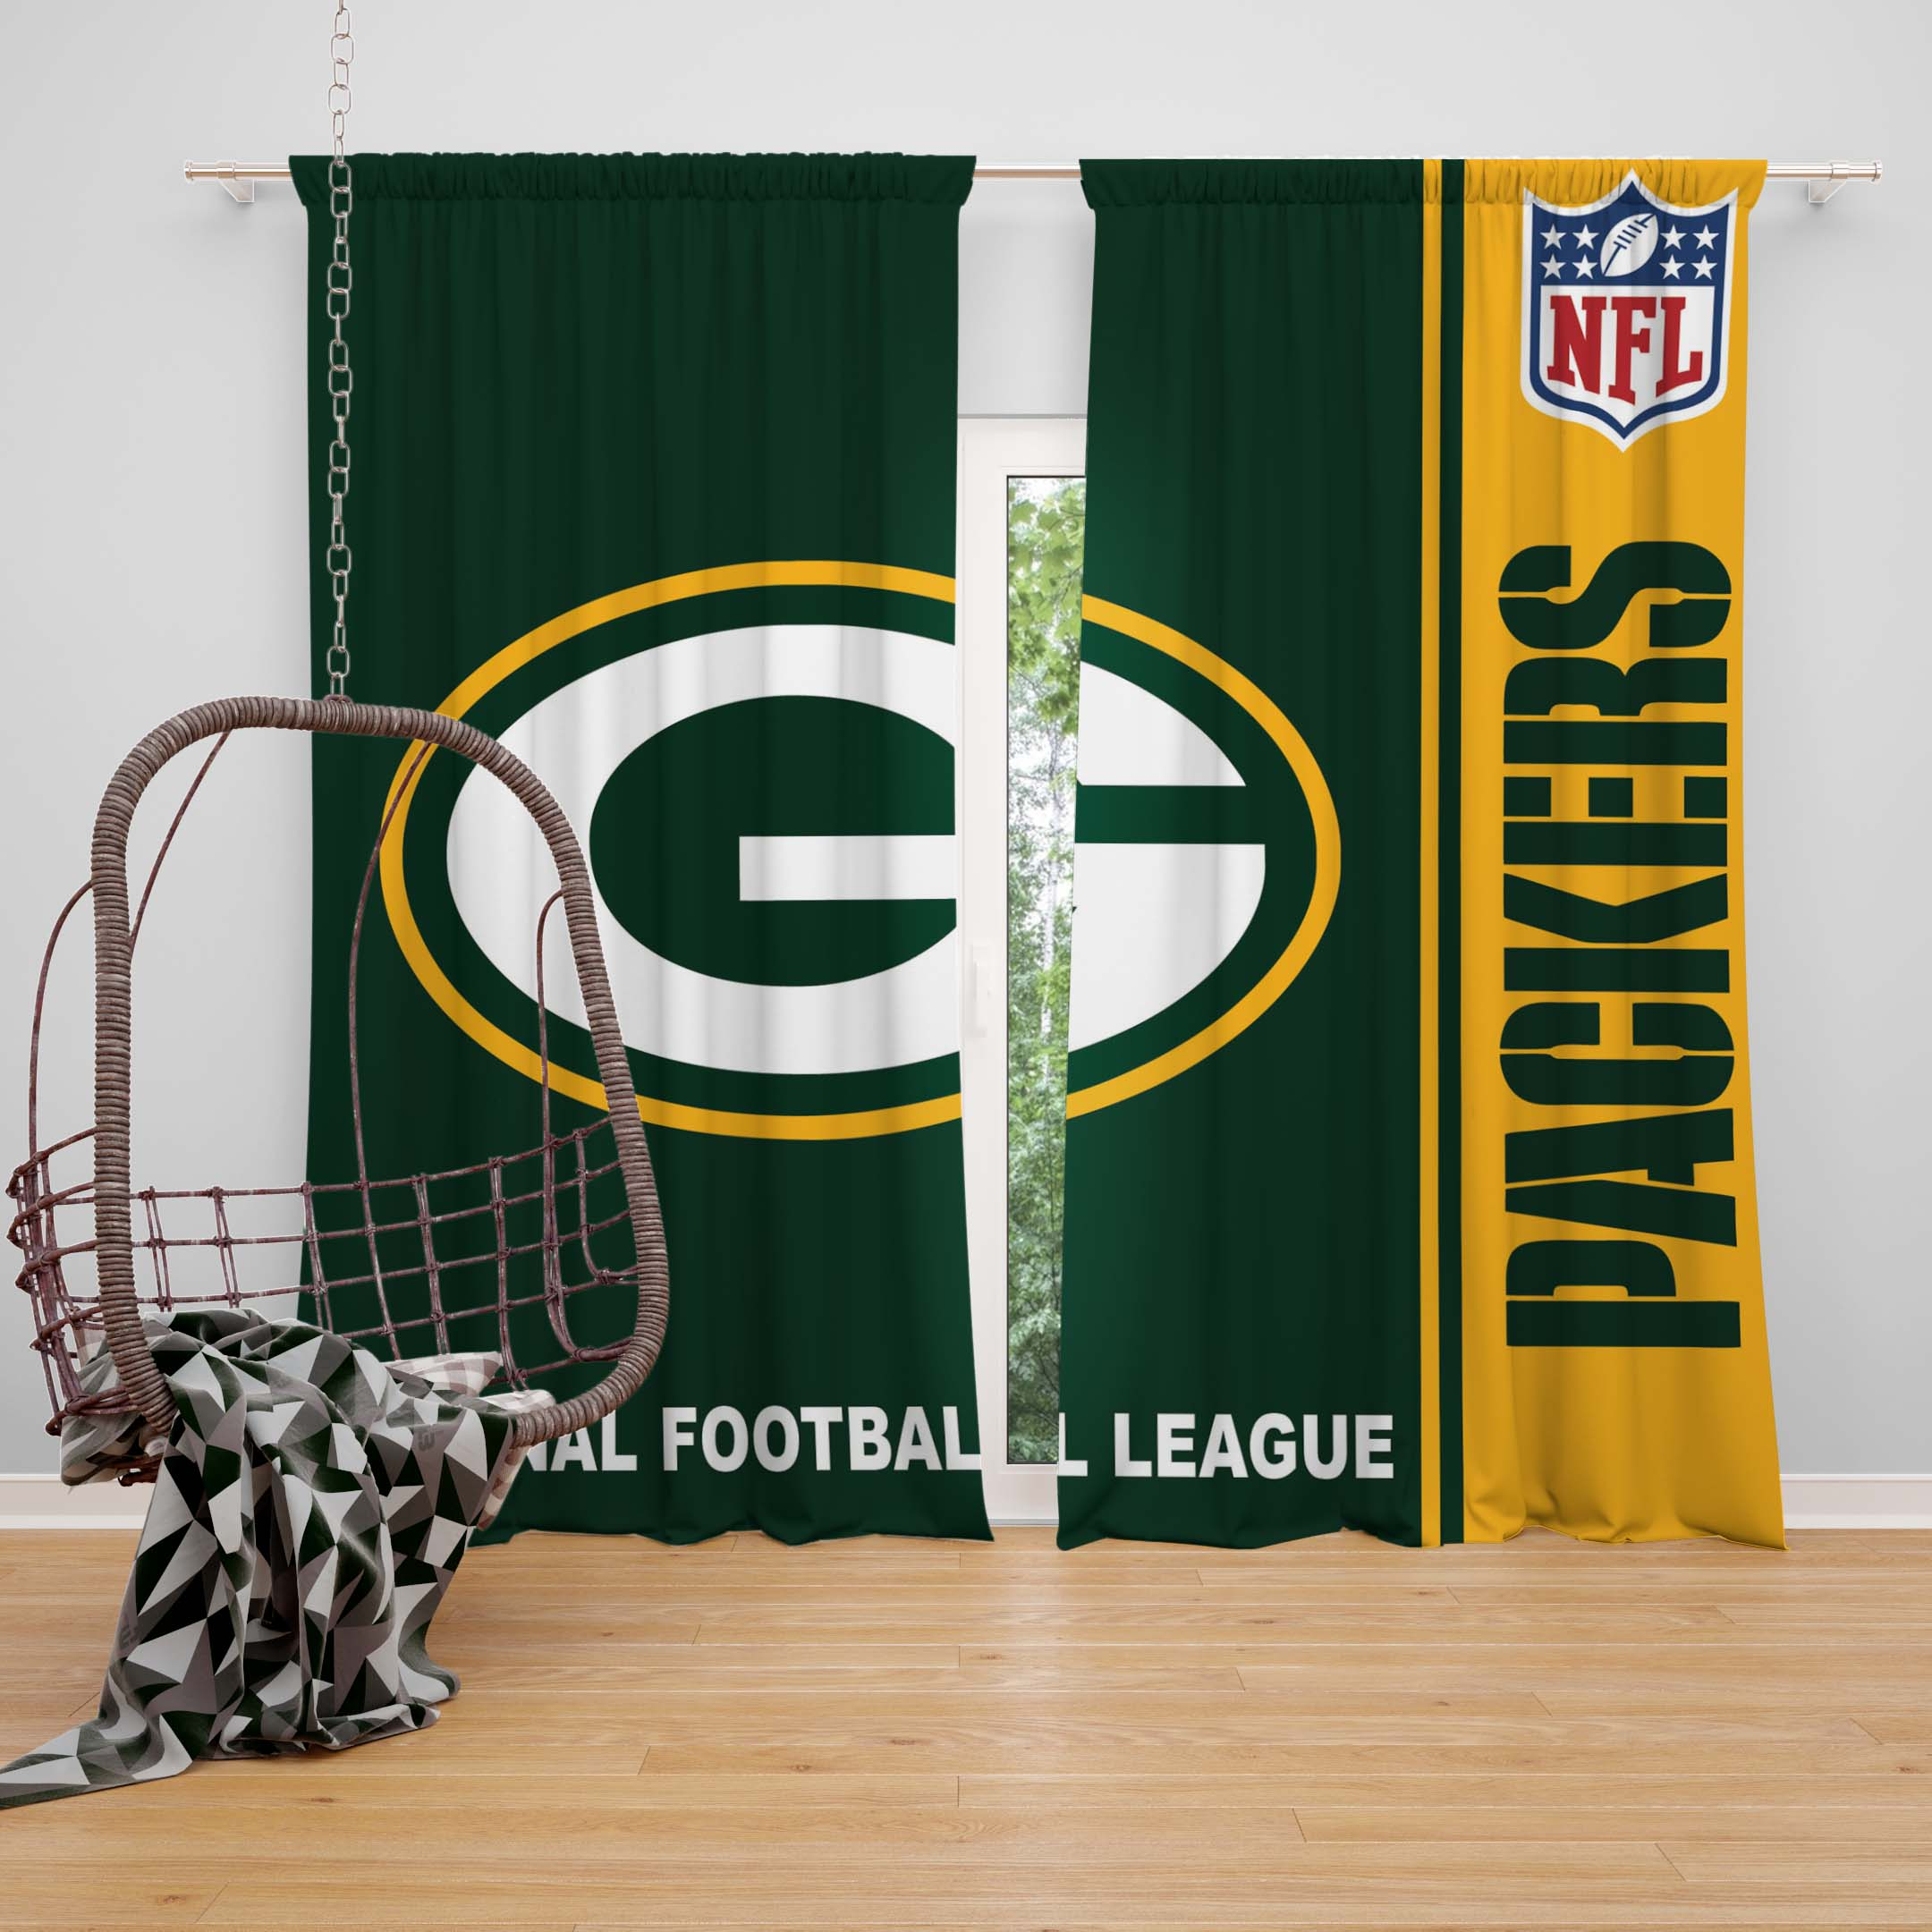 Nfl Green Bay Packers Bedroom Curtain Ebeddingsets